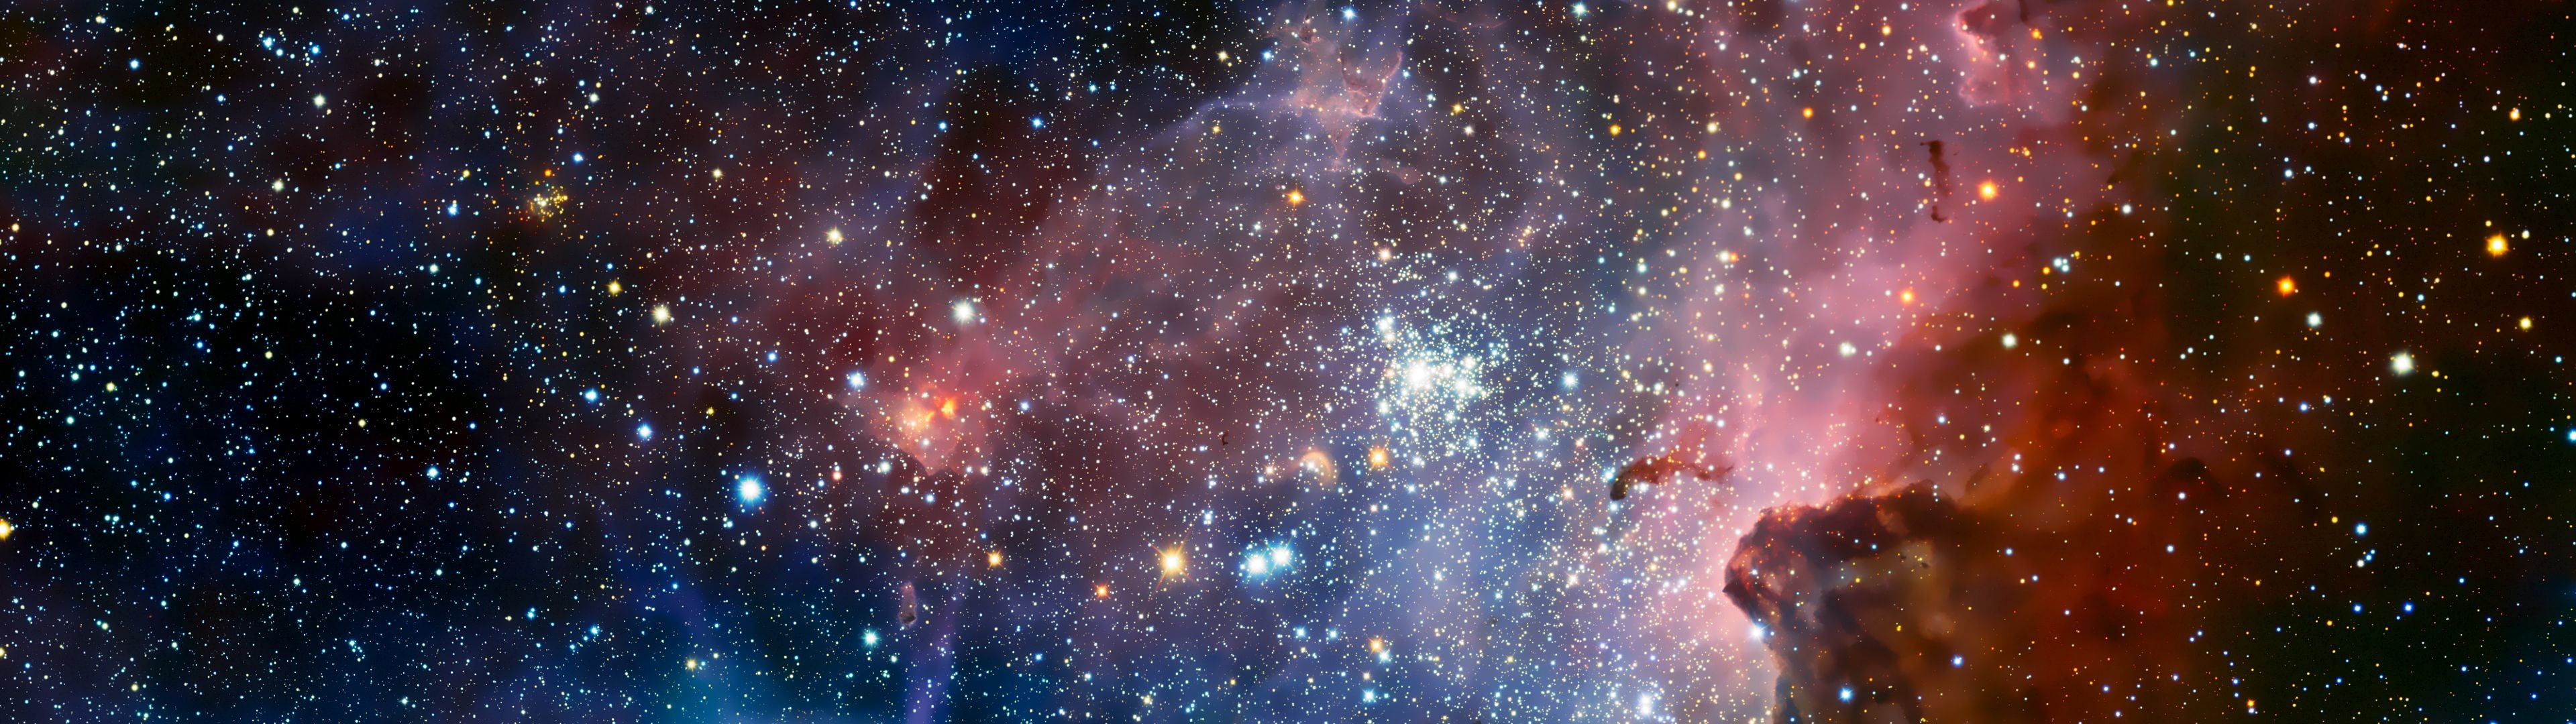 Outer space wallpaper 181944 wallpaperup – 3840 1080 Wallpaper  Images 47. Download